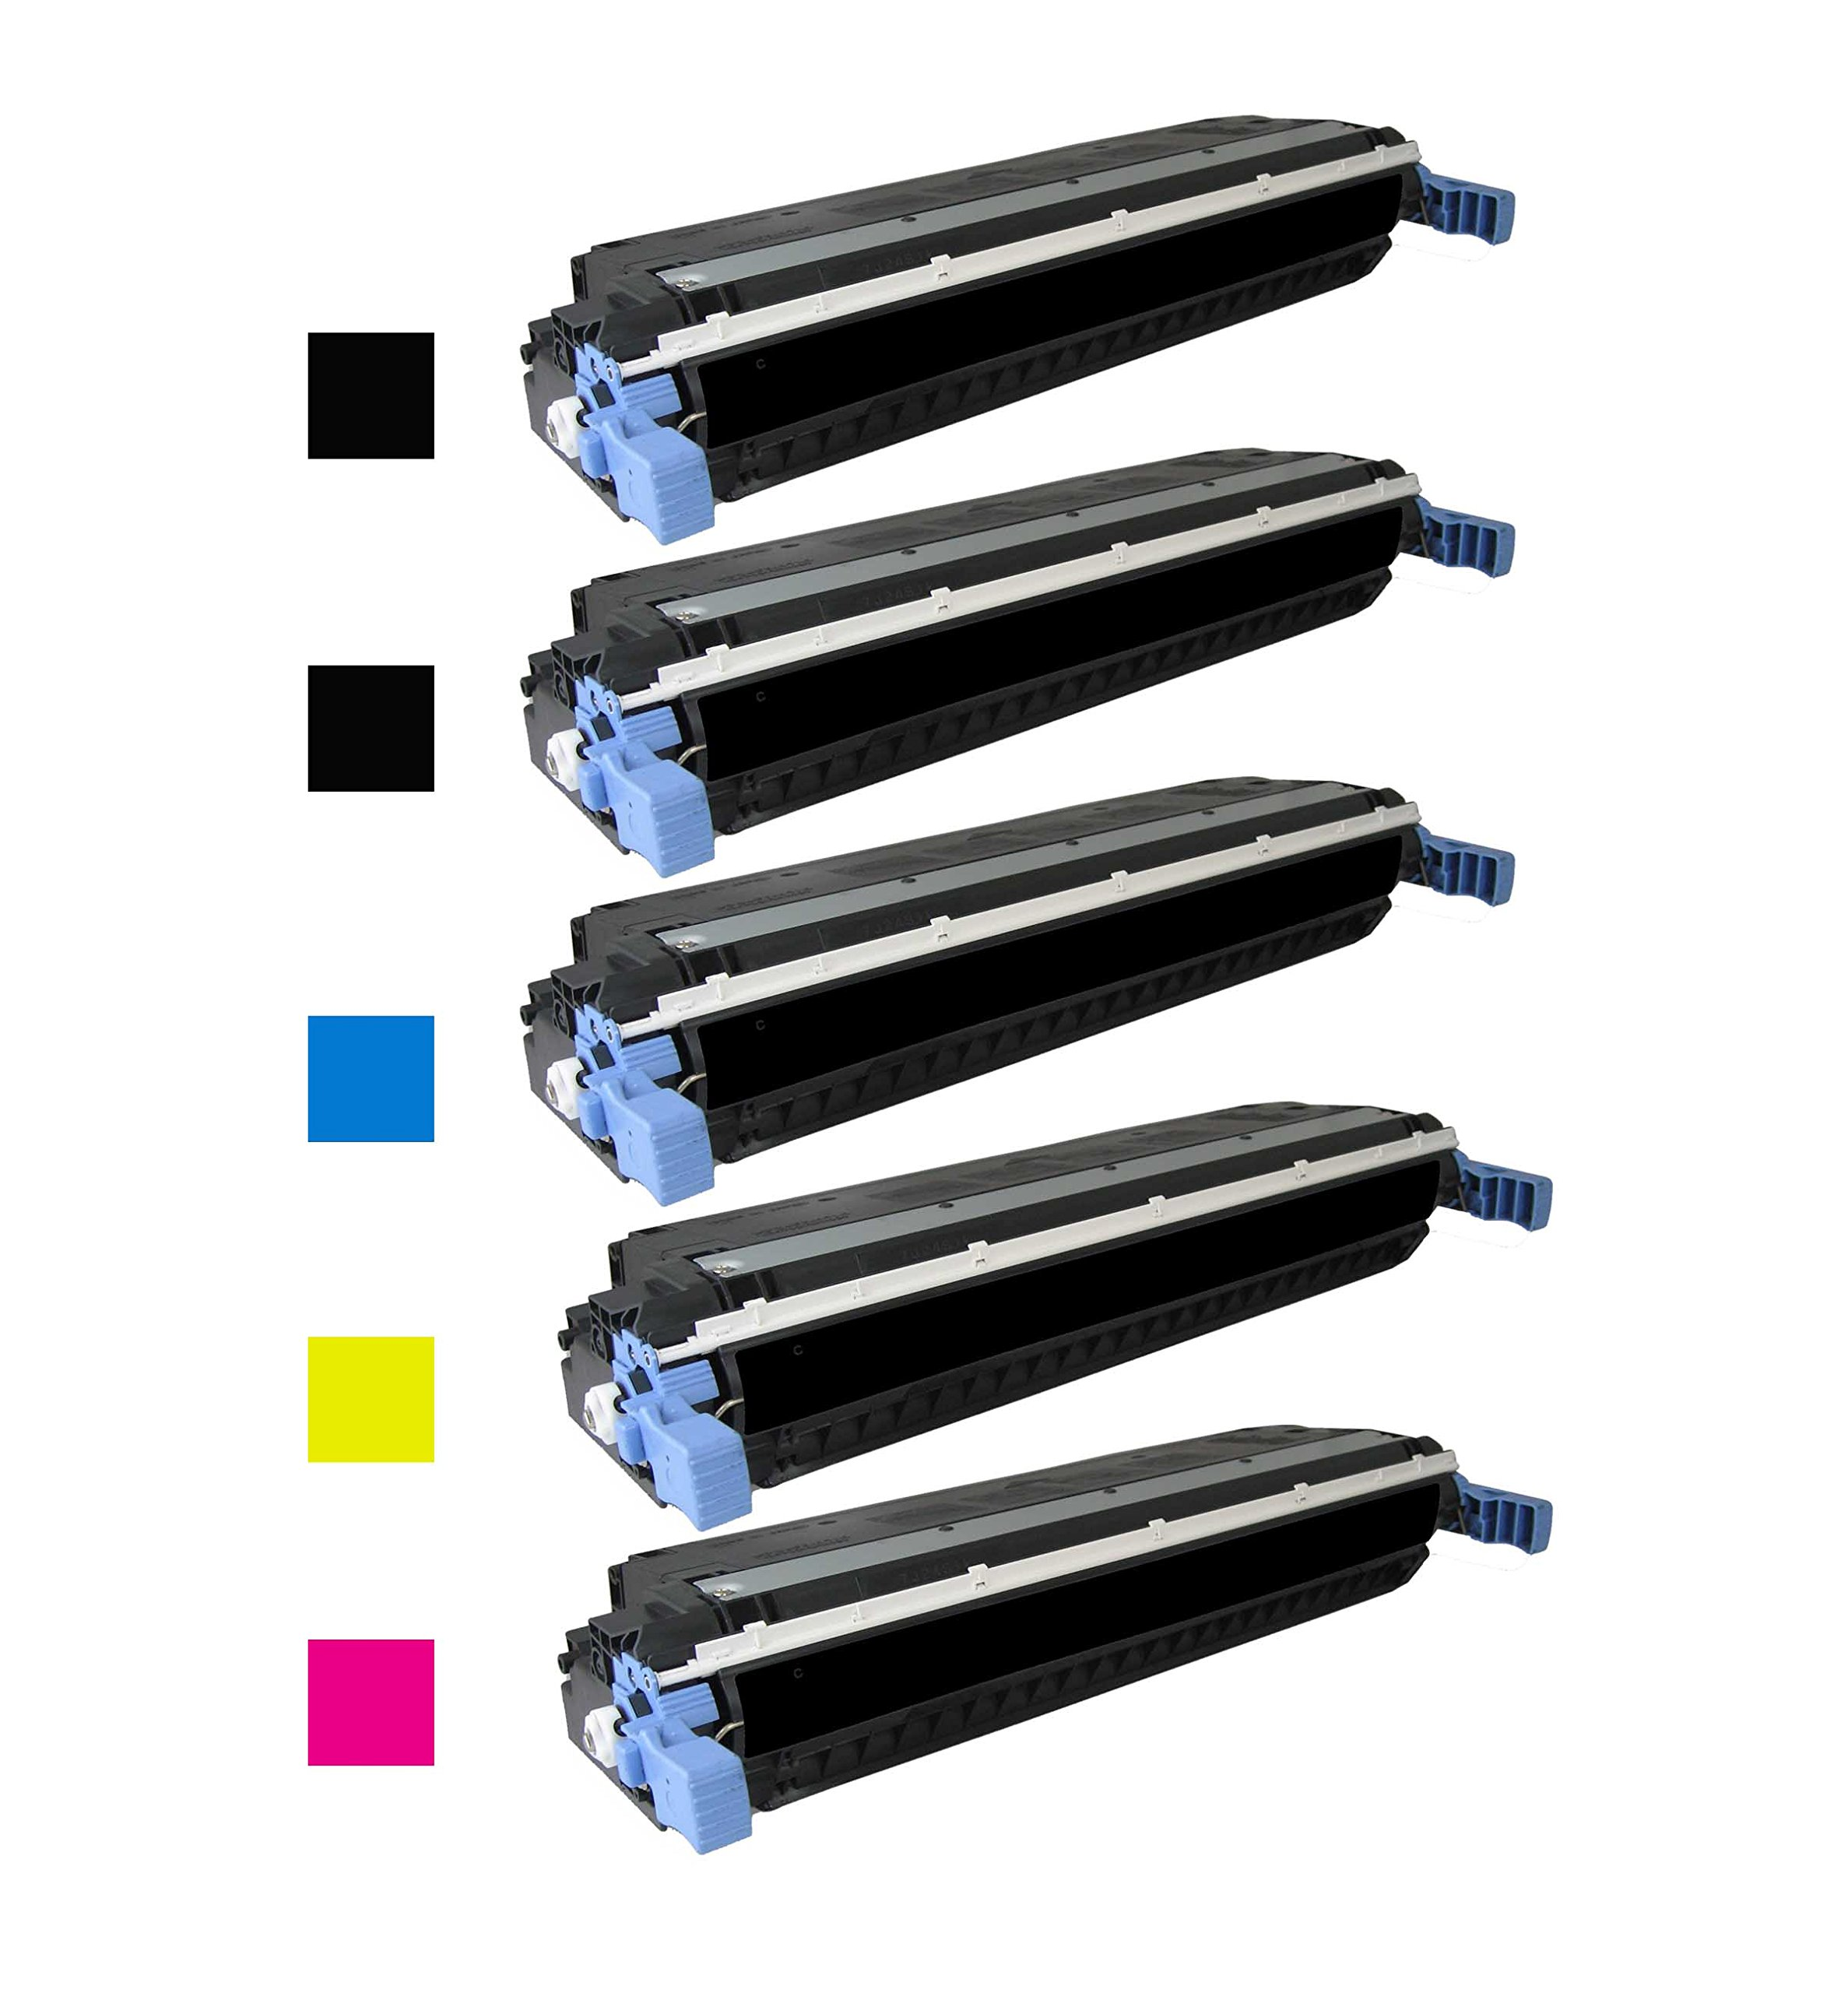 Green Toner Supply Remanufactured Toner Cartridge Replacement for HP Q6470A Q6471A Q6472A Q6473A (2 Black, 1 Cyan, 1 Yellow, 1 Magenta, 5-Pack)